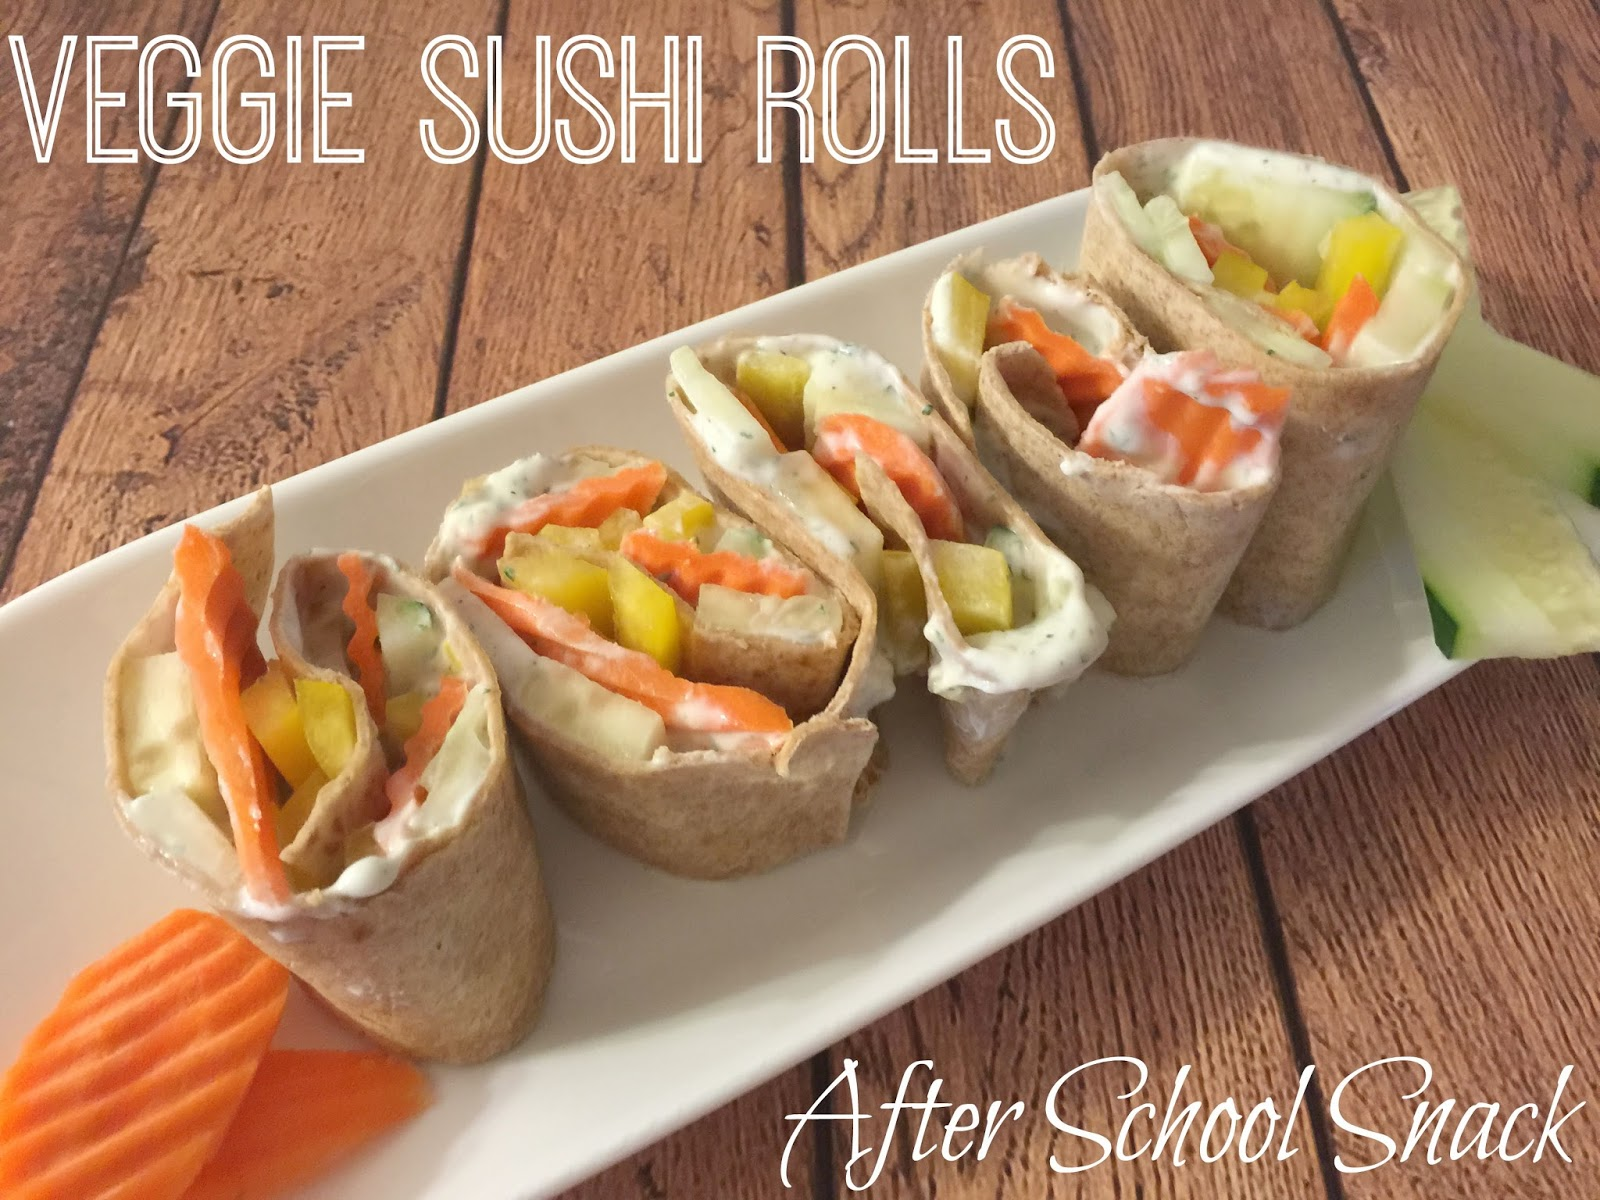 ... school, lunch box creations, Kids Sushi, Veggie sushi rolls for kids